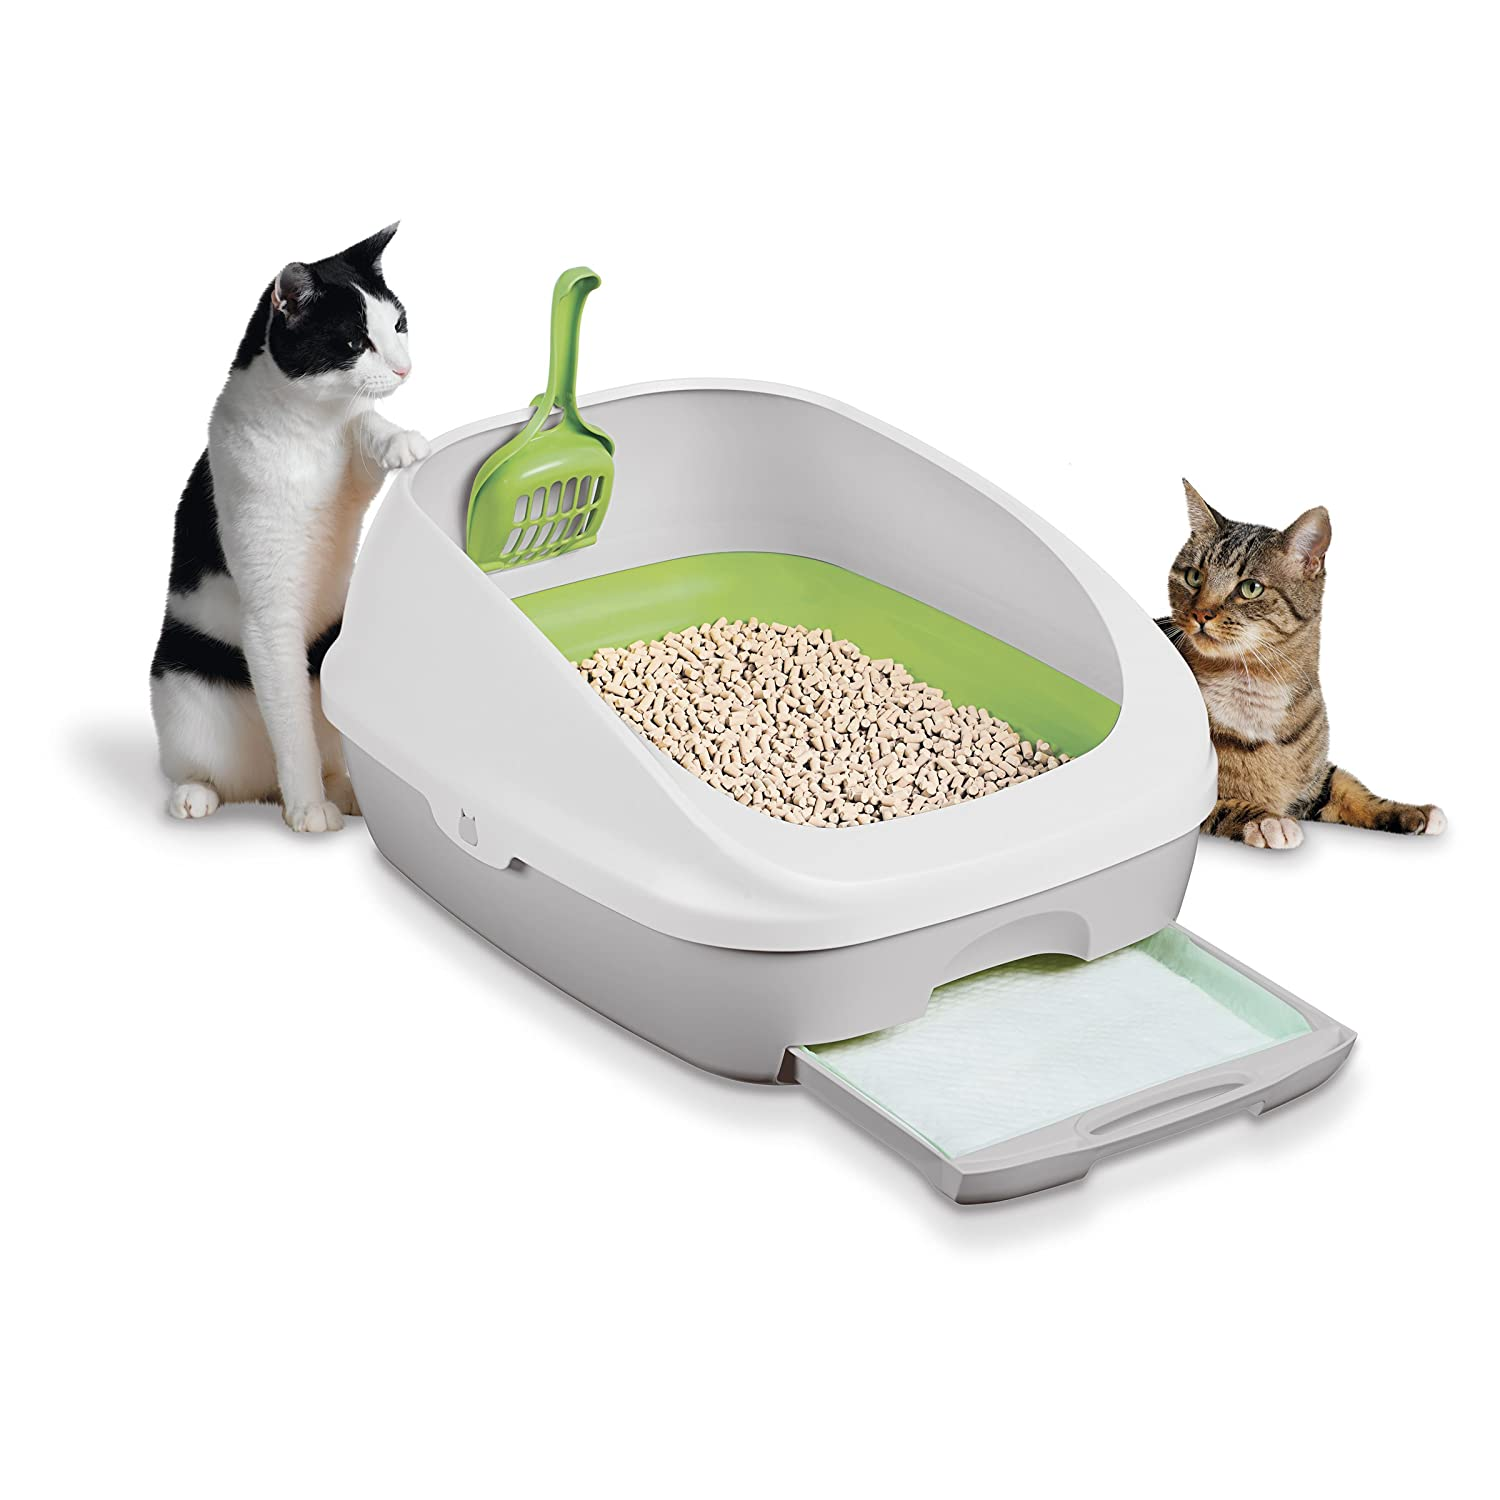 Tidy Cats Cat Litter Box Kit System